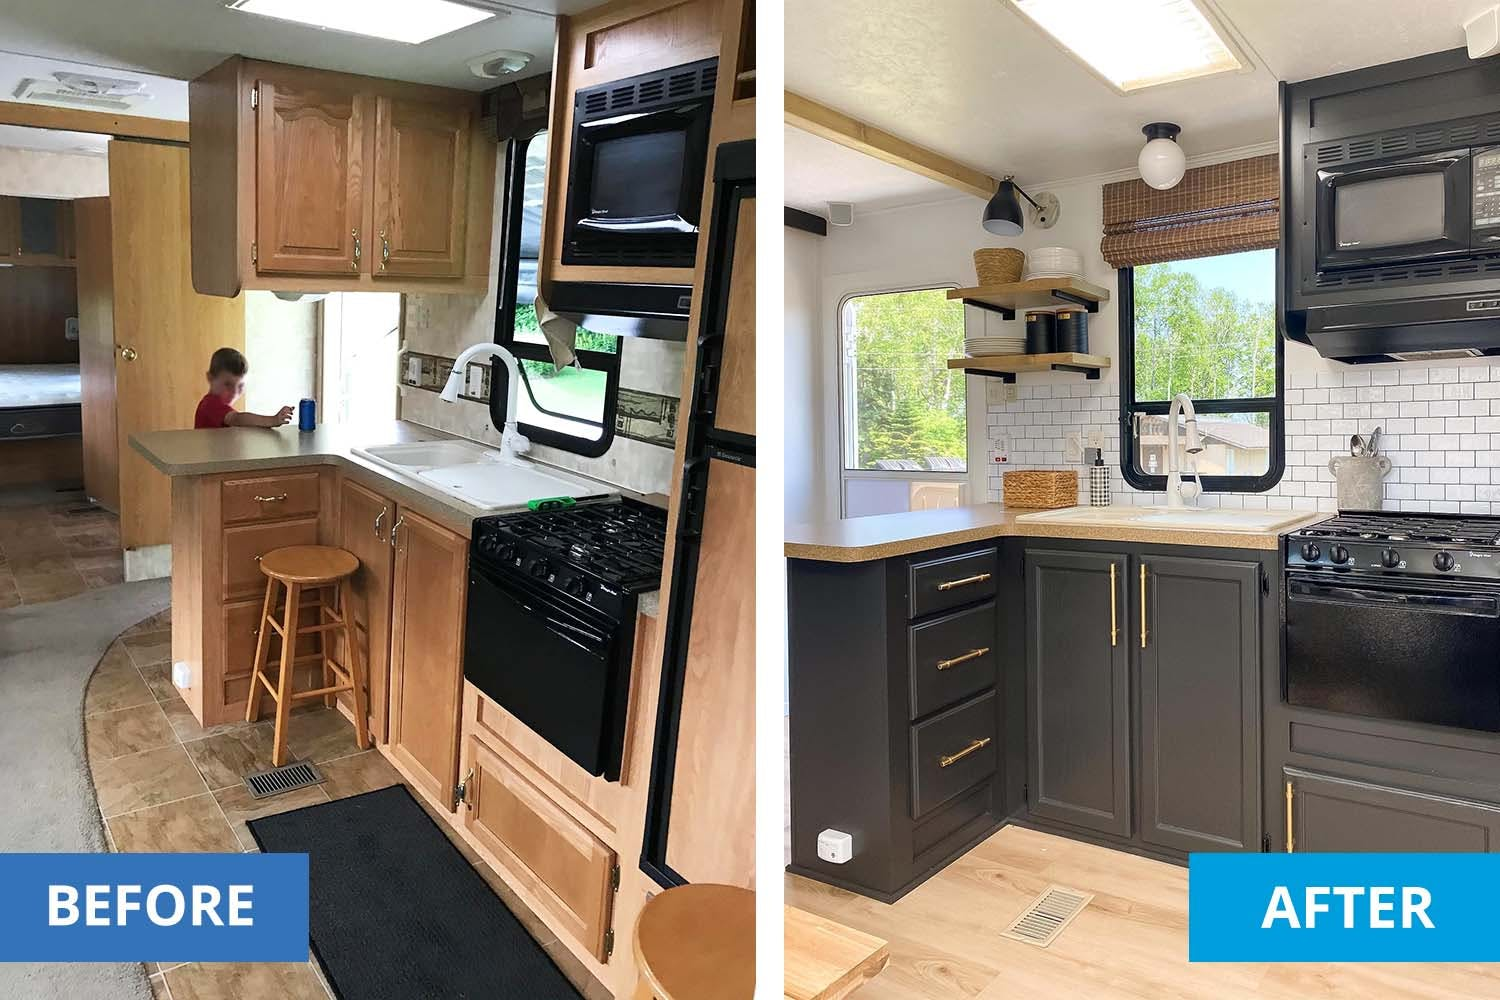 before and after photos of an RV kitchen remodel.